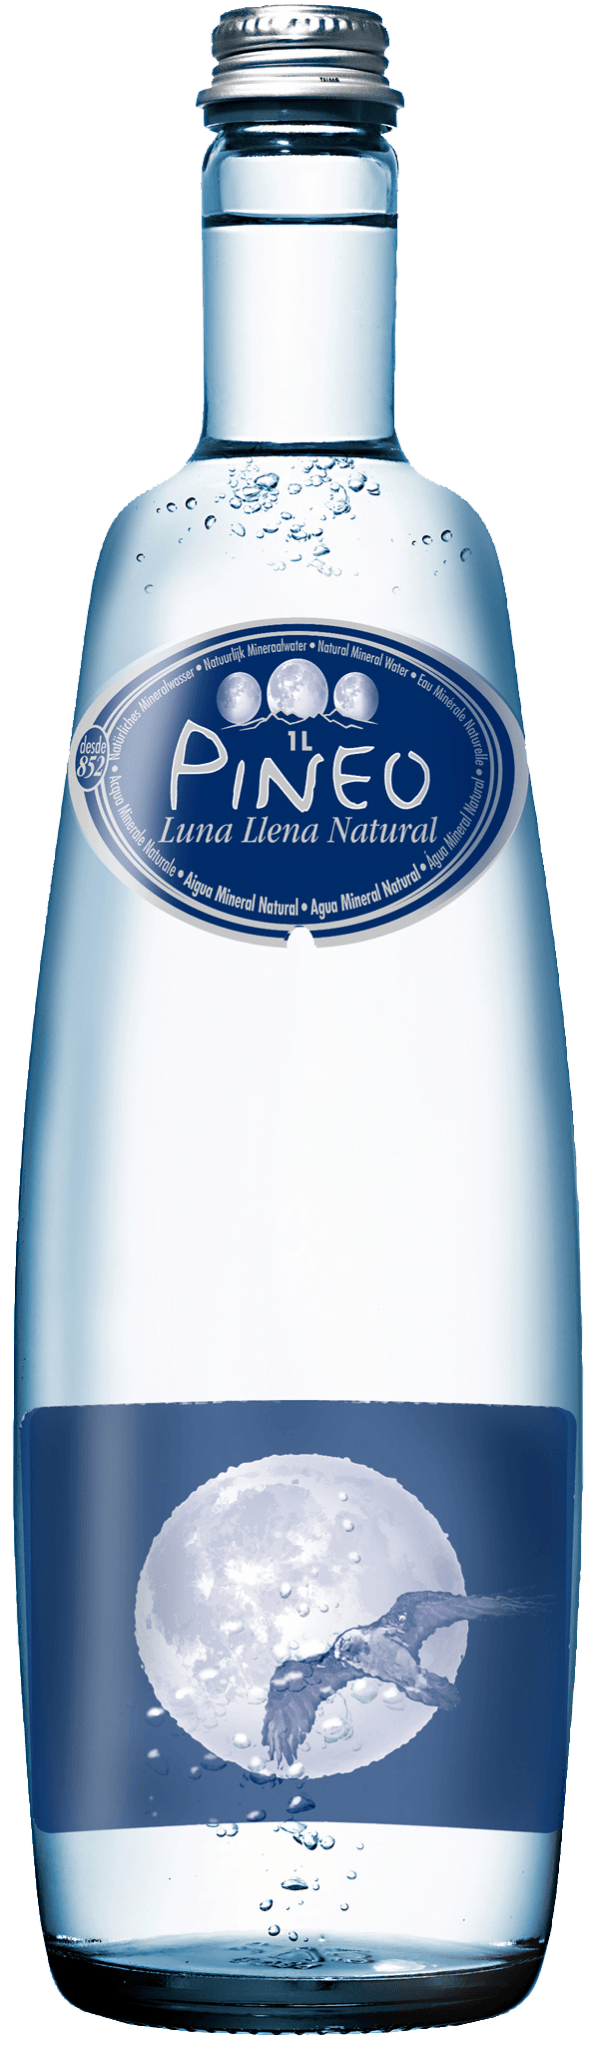 Pineo moon water 1 l, healthy mineral water